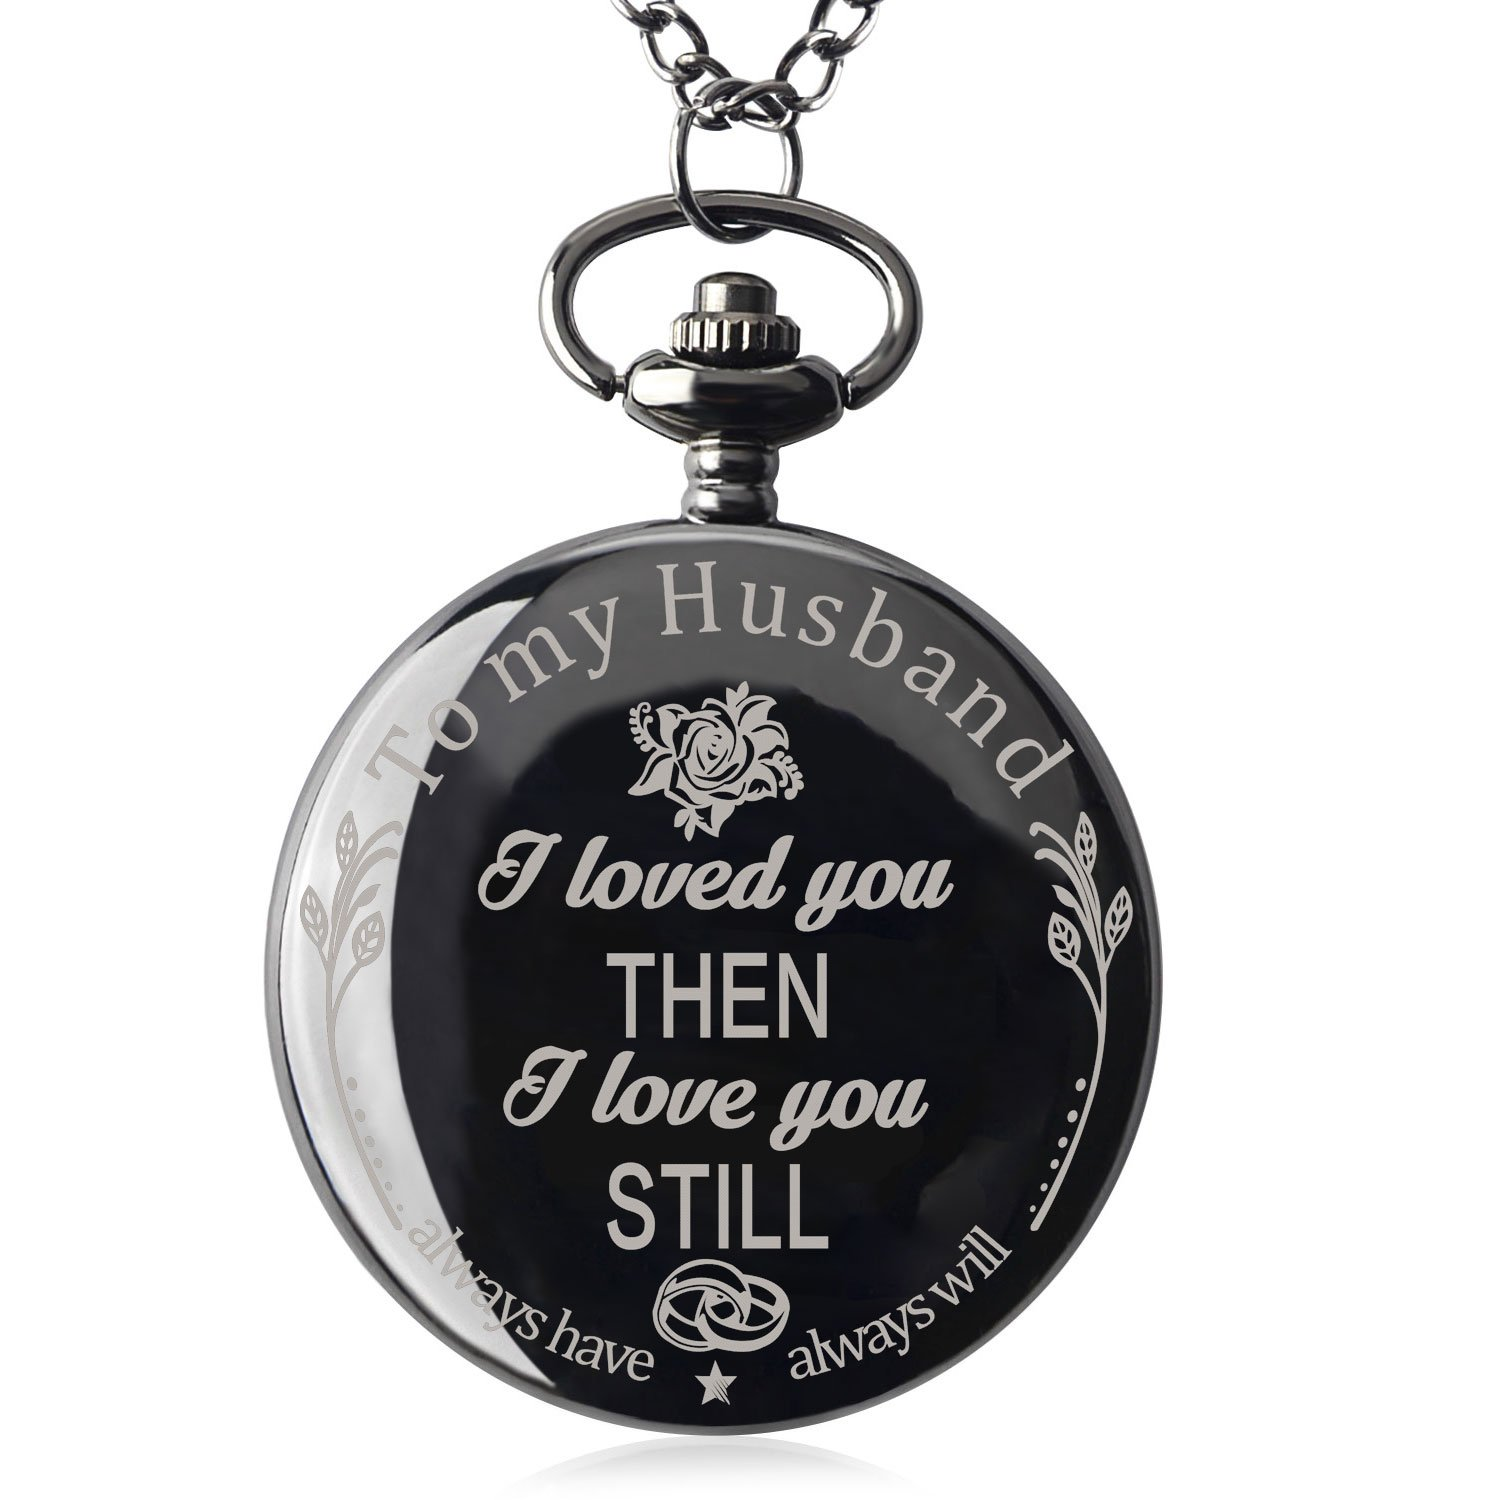 Pocket Watch with Chain Necklace To My Husband Anniversary Gift from Wife for Him (I Love You Still)